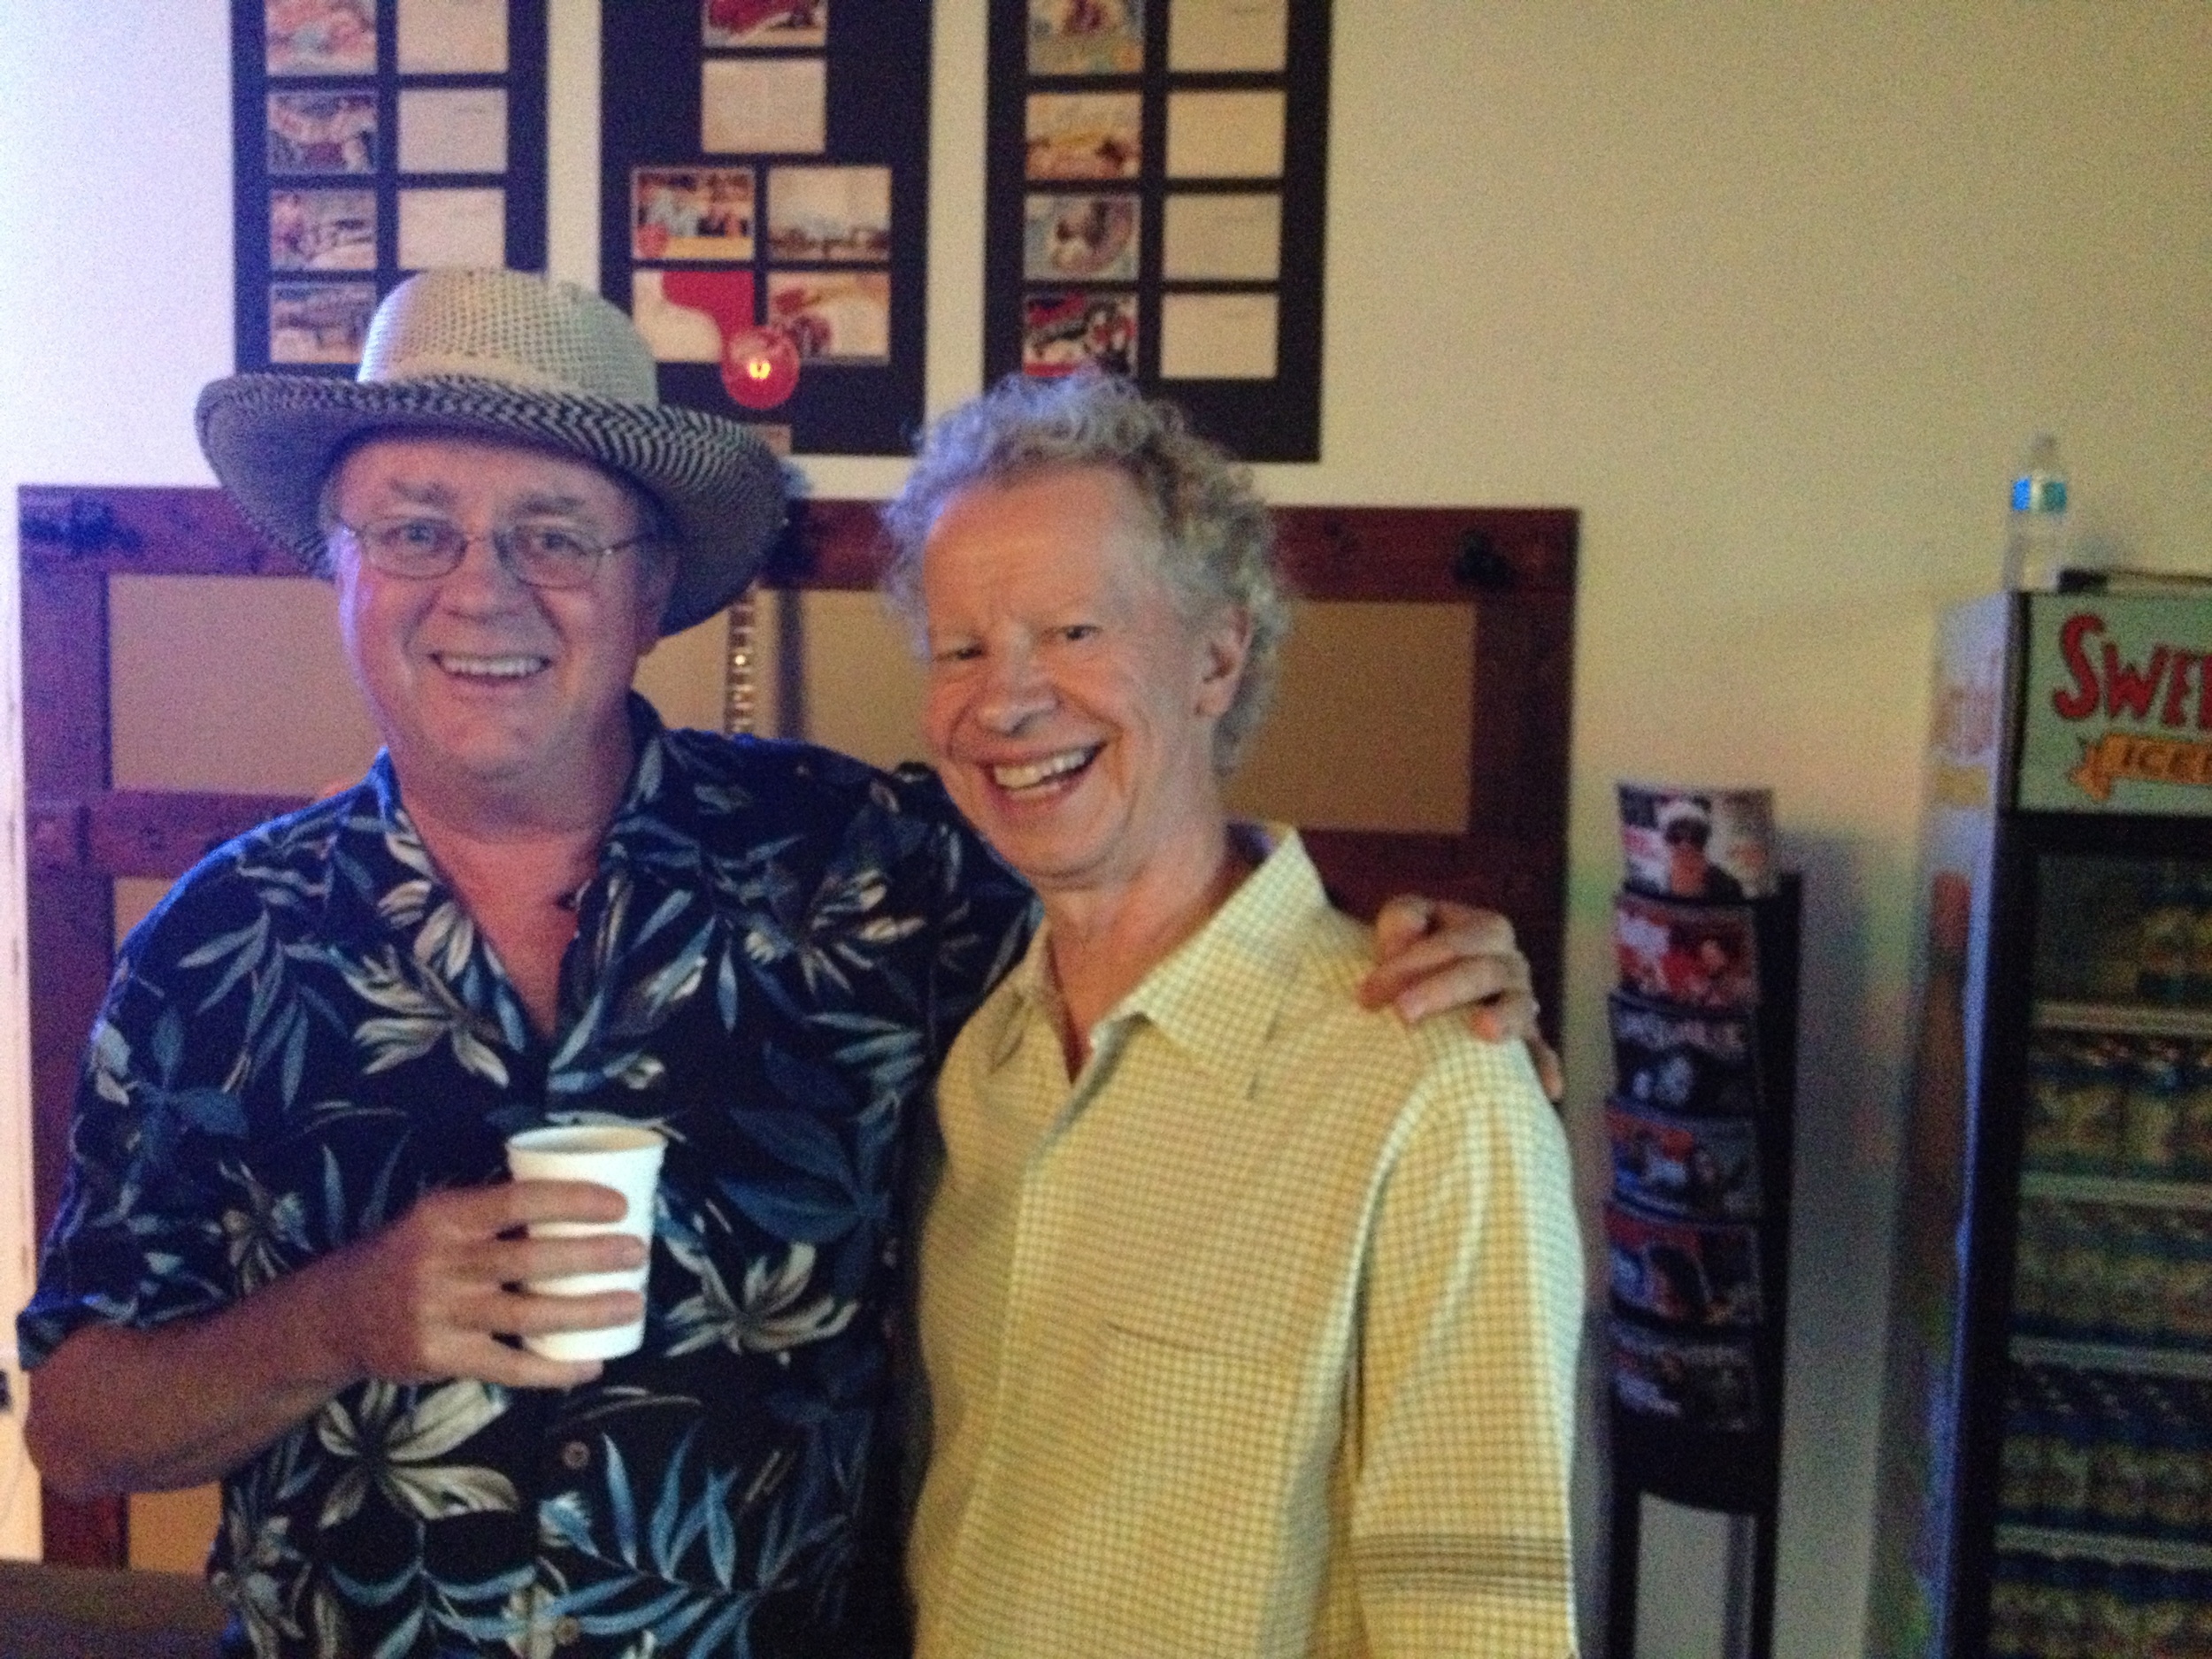 """Emcee Terry Lickona (producer of Austin City Limits) and Robert """"Beto"""" Skiles"""